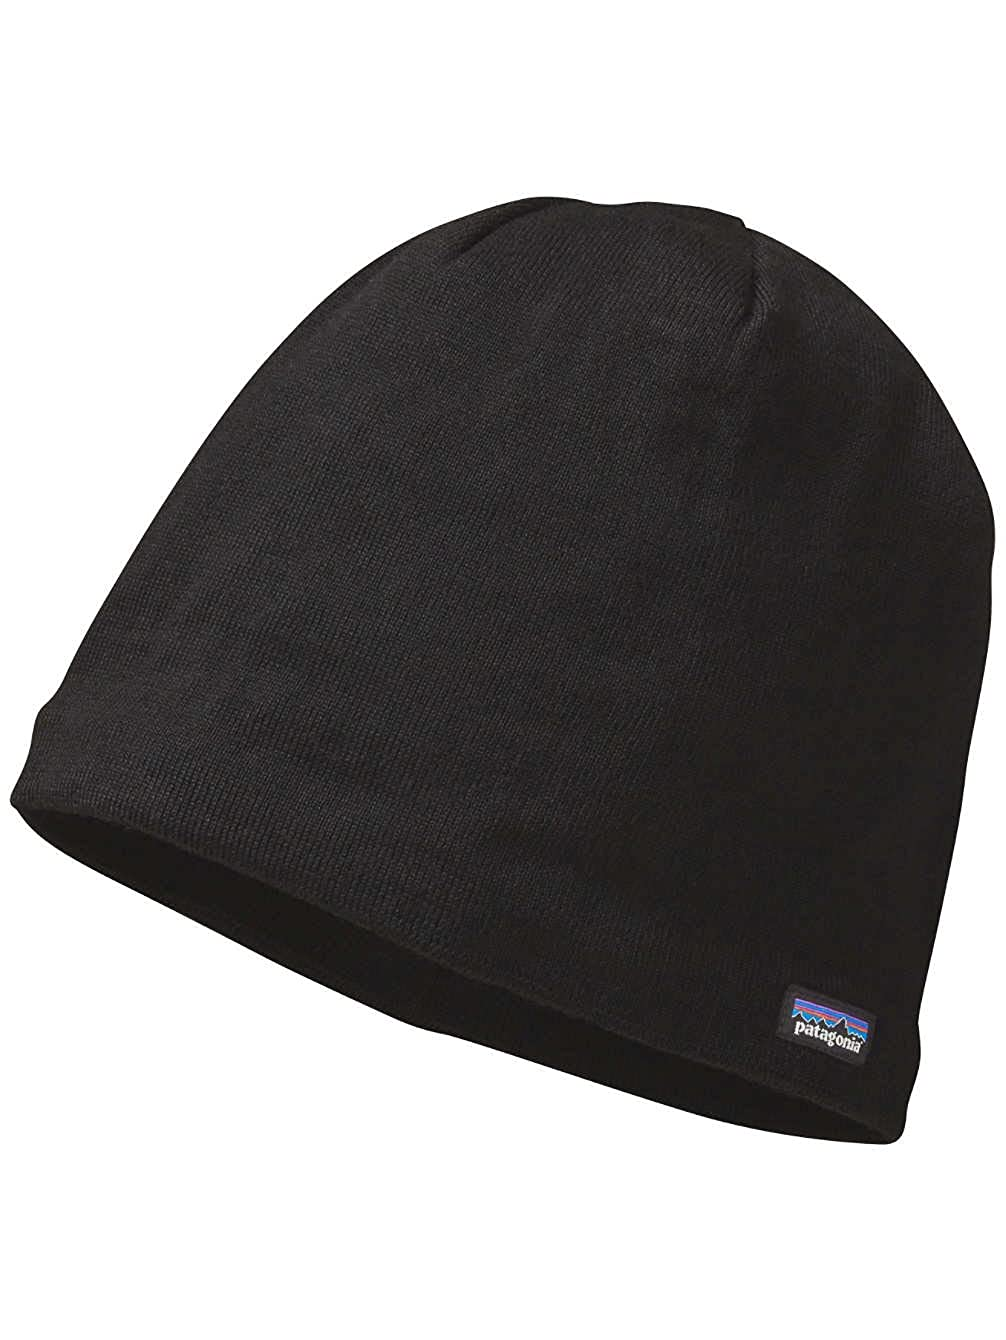 Patagonia Hats Recycled Beanie Hat - Cream  Amazon.co.uk  Clothing 09fe2f00d35